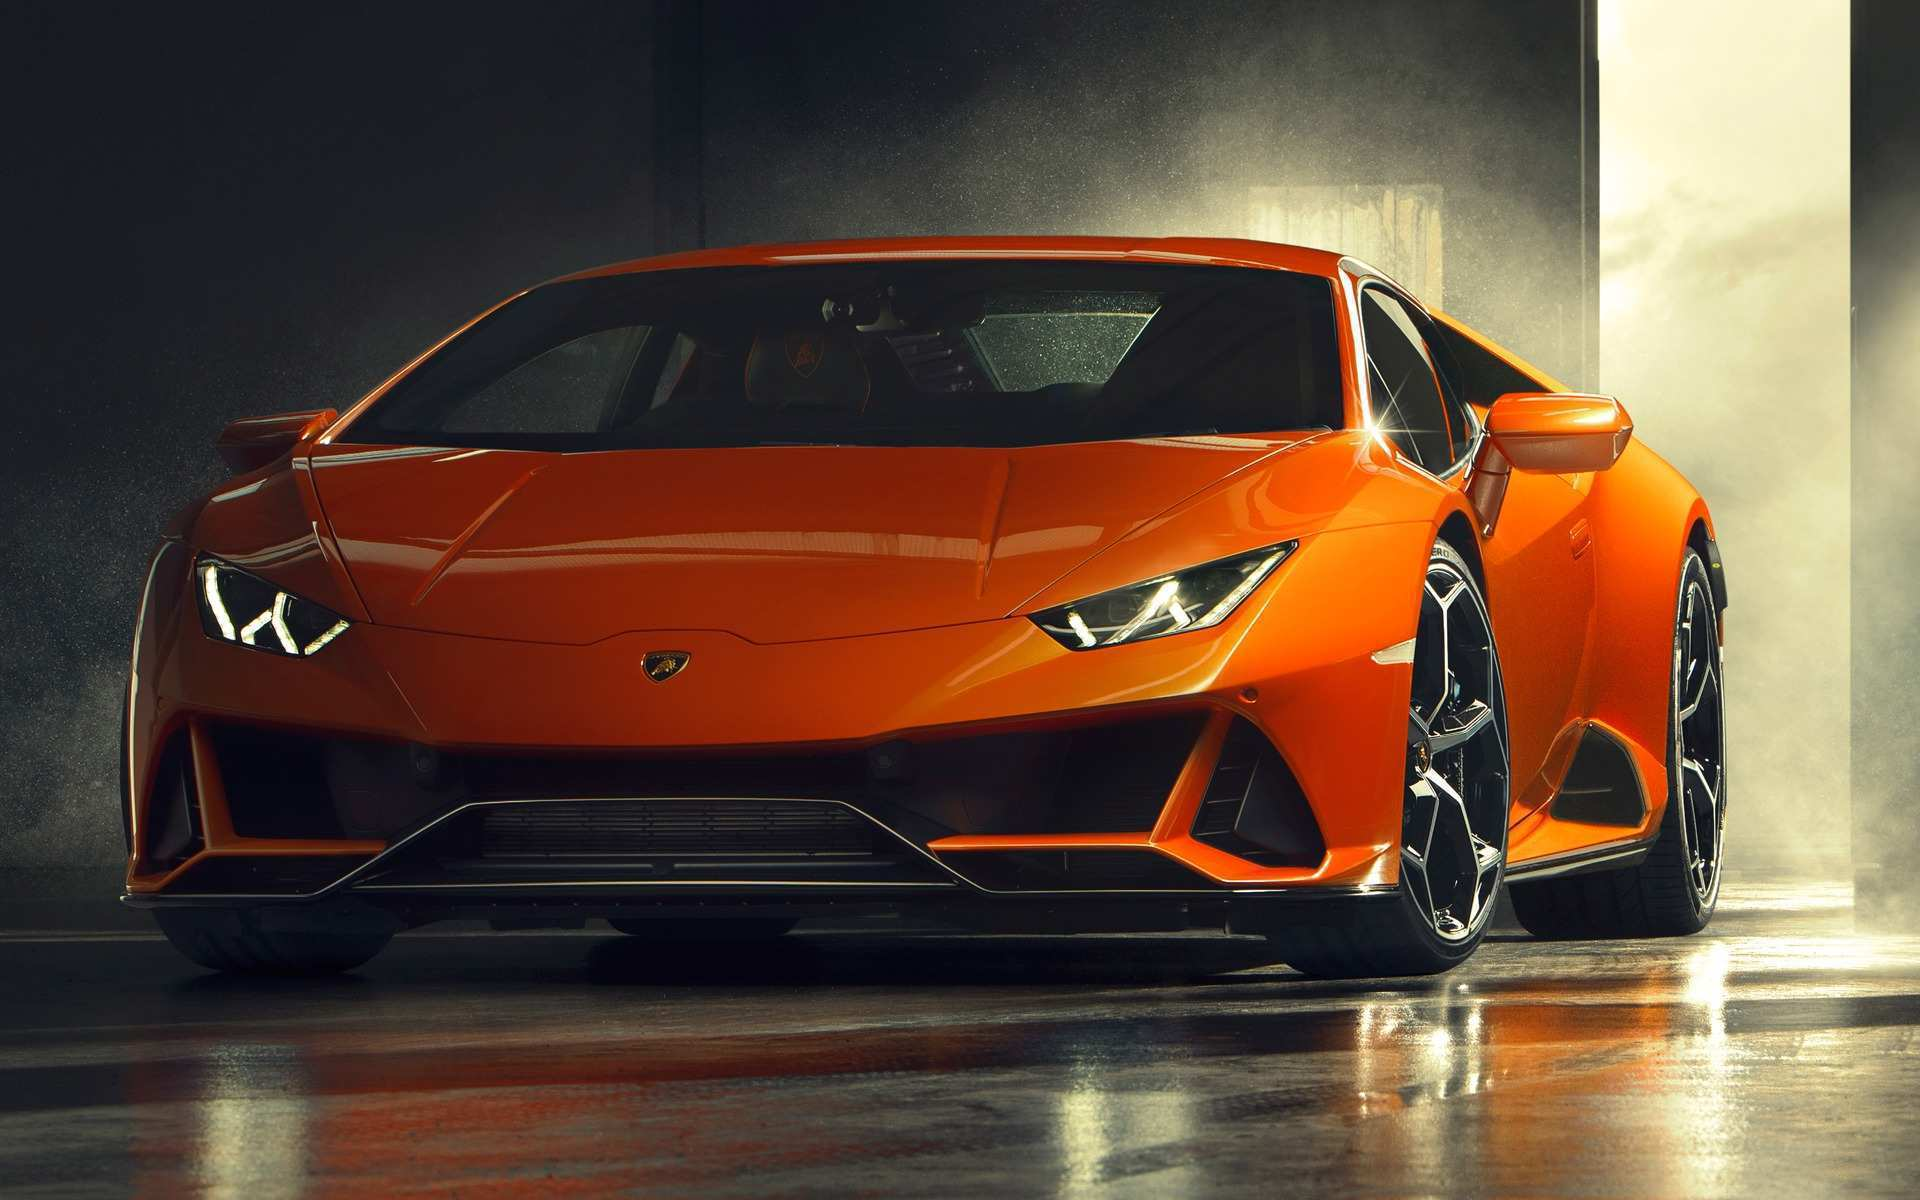 46 The Best 2020 Lamborghini Huracan Photos